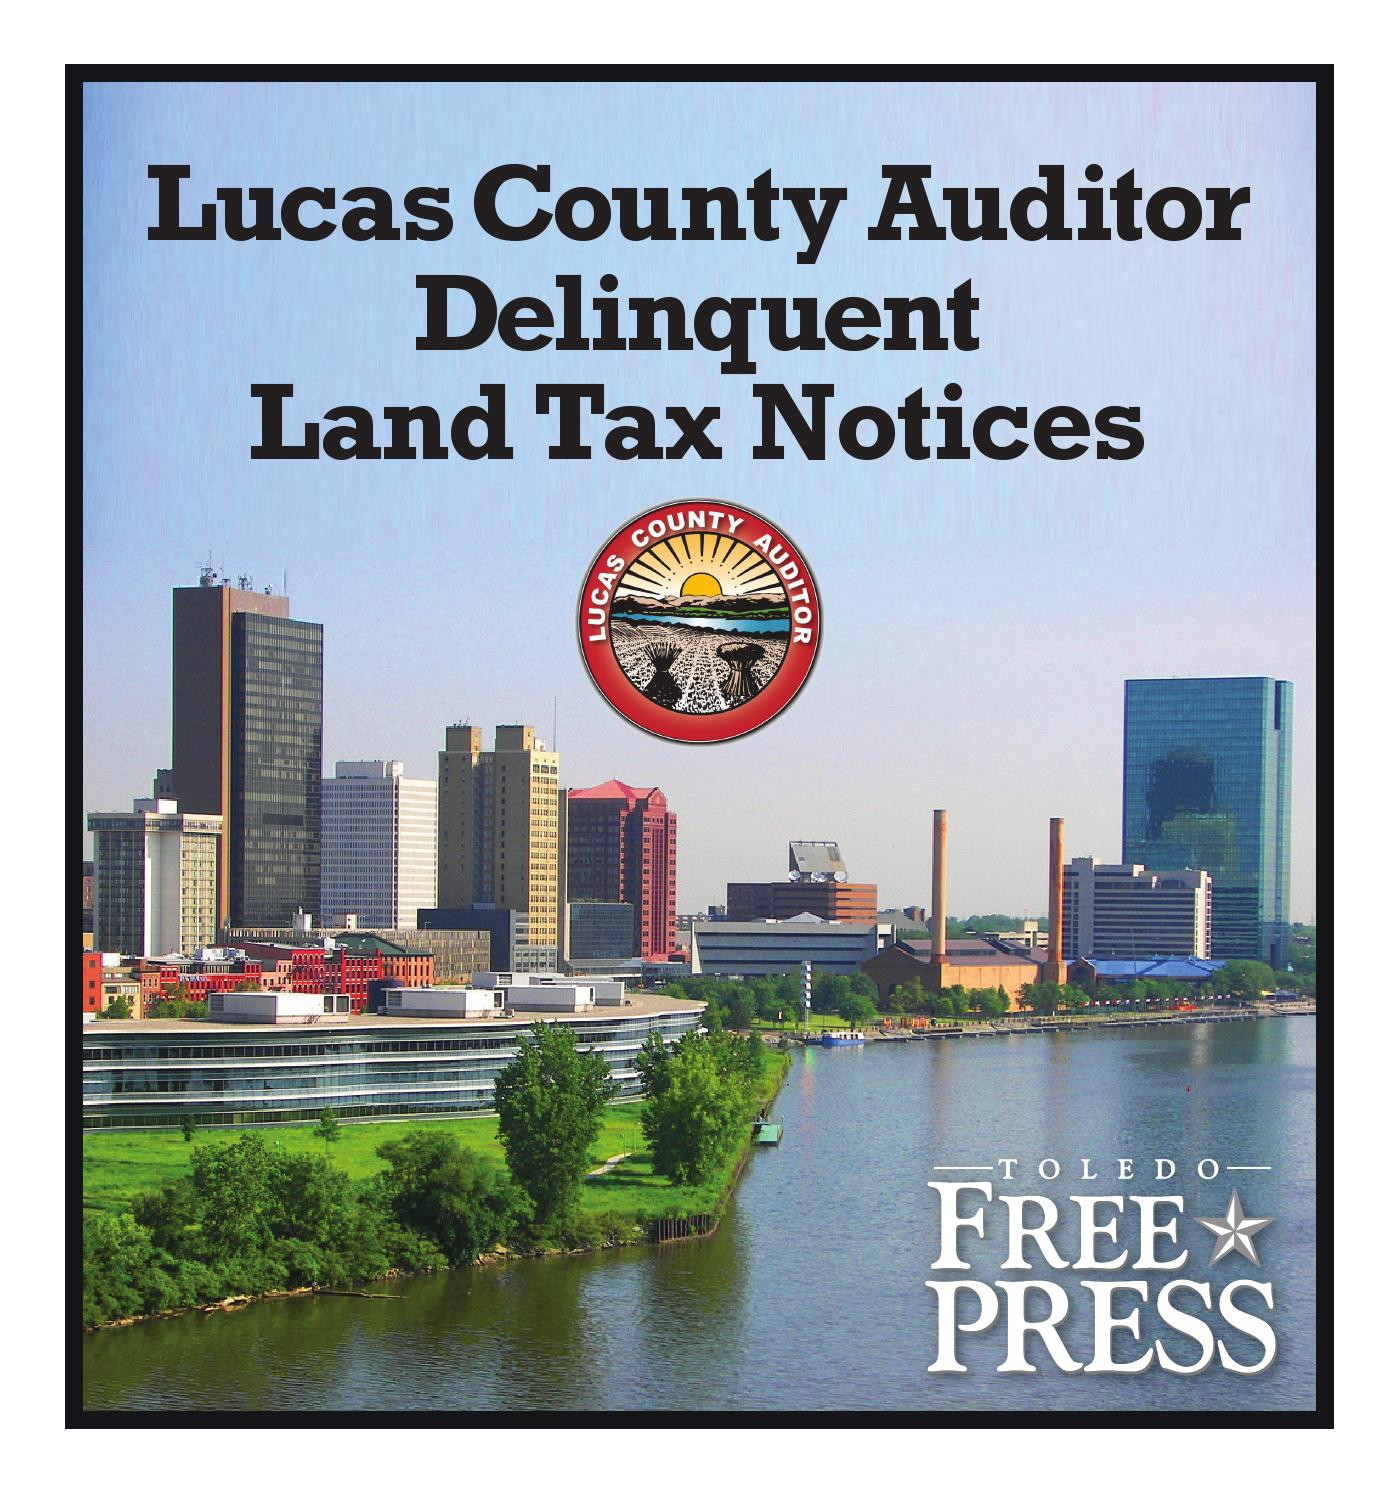 Ohio lucas county monclova - Lucas County Auditor Delinquent Land Tax Notices By Toledo Free Press Issuu